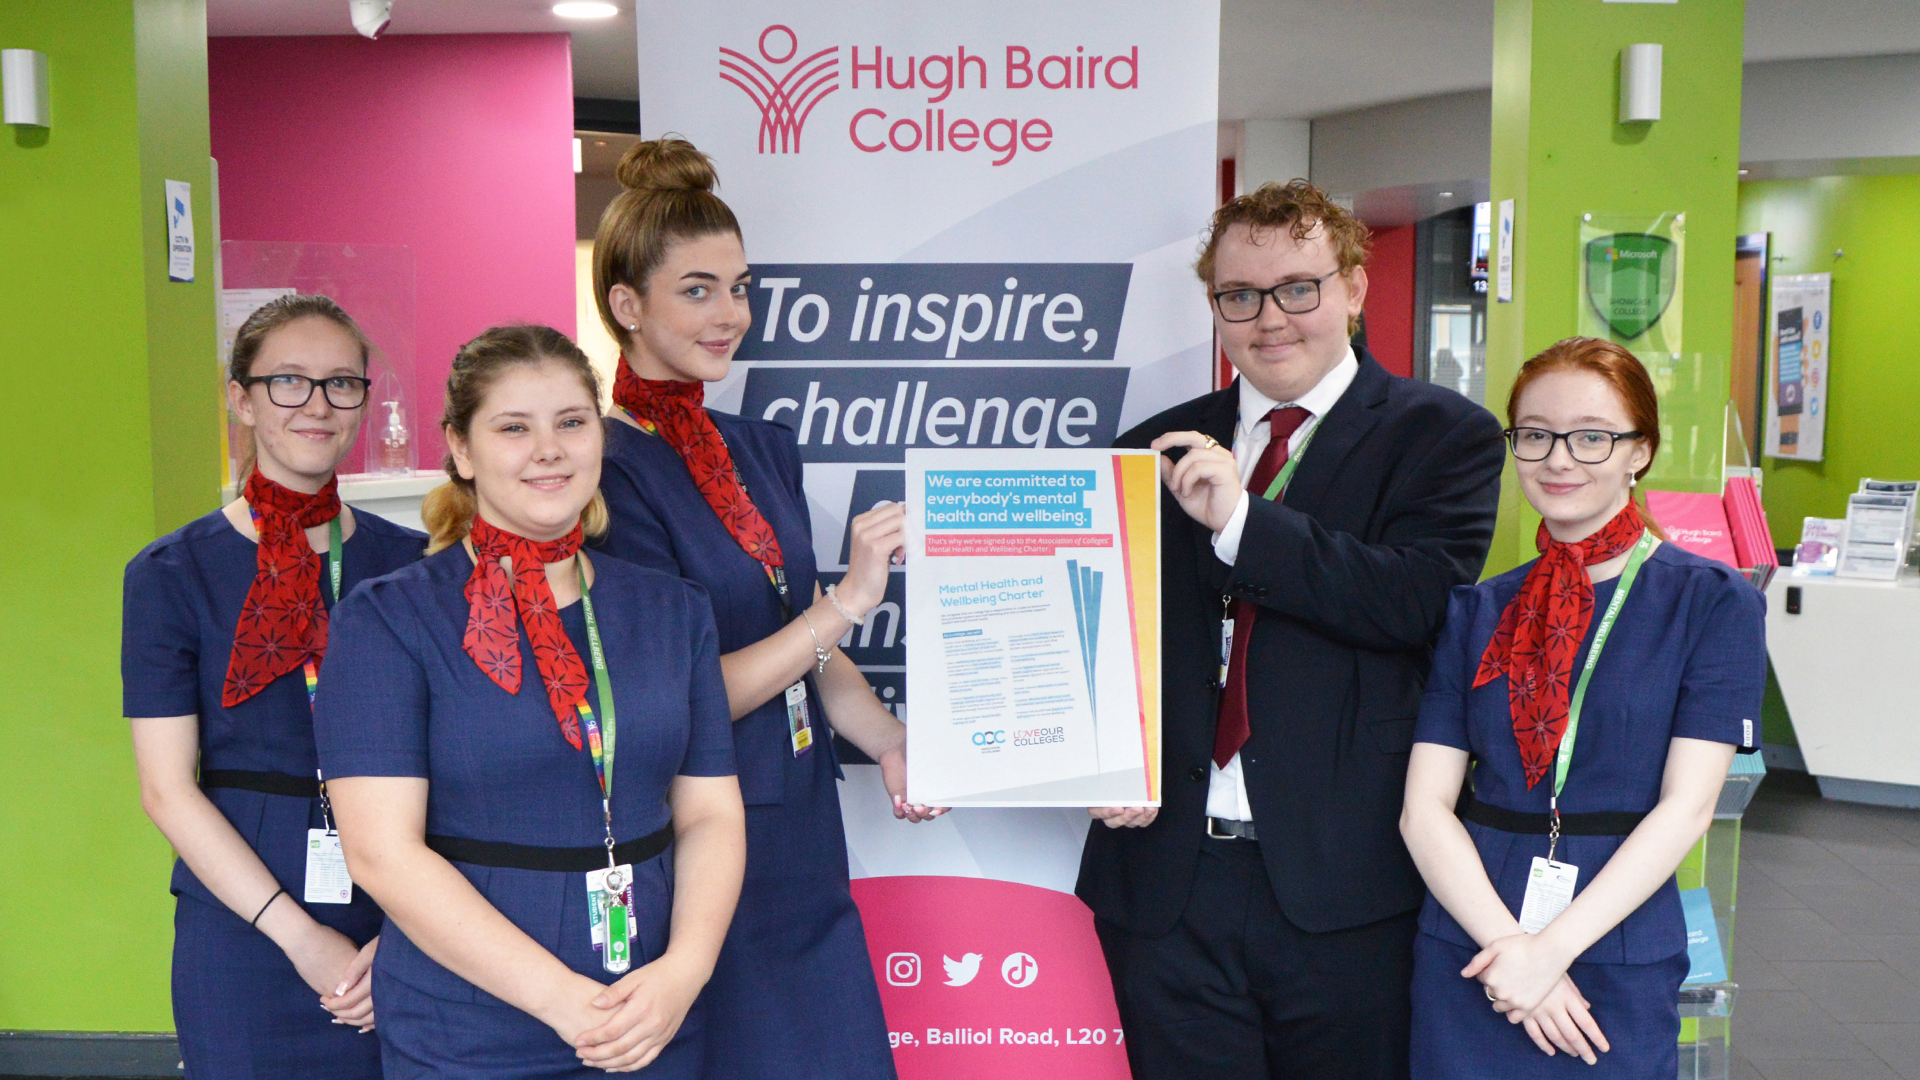 College makes commitment to support students and staff with their mental health and wellbeing